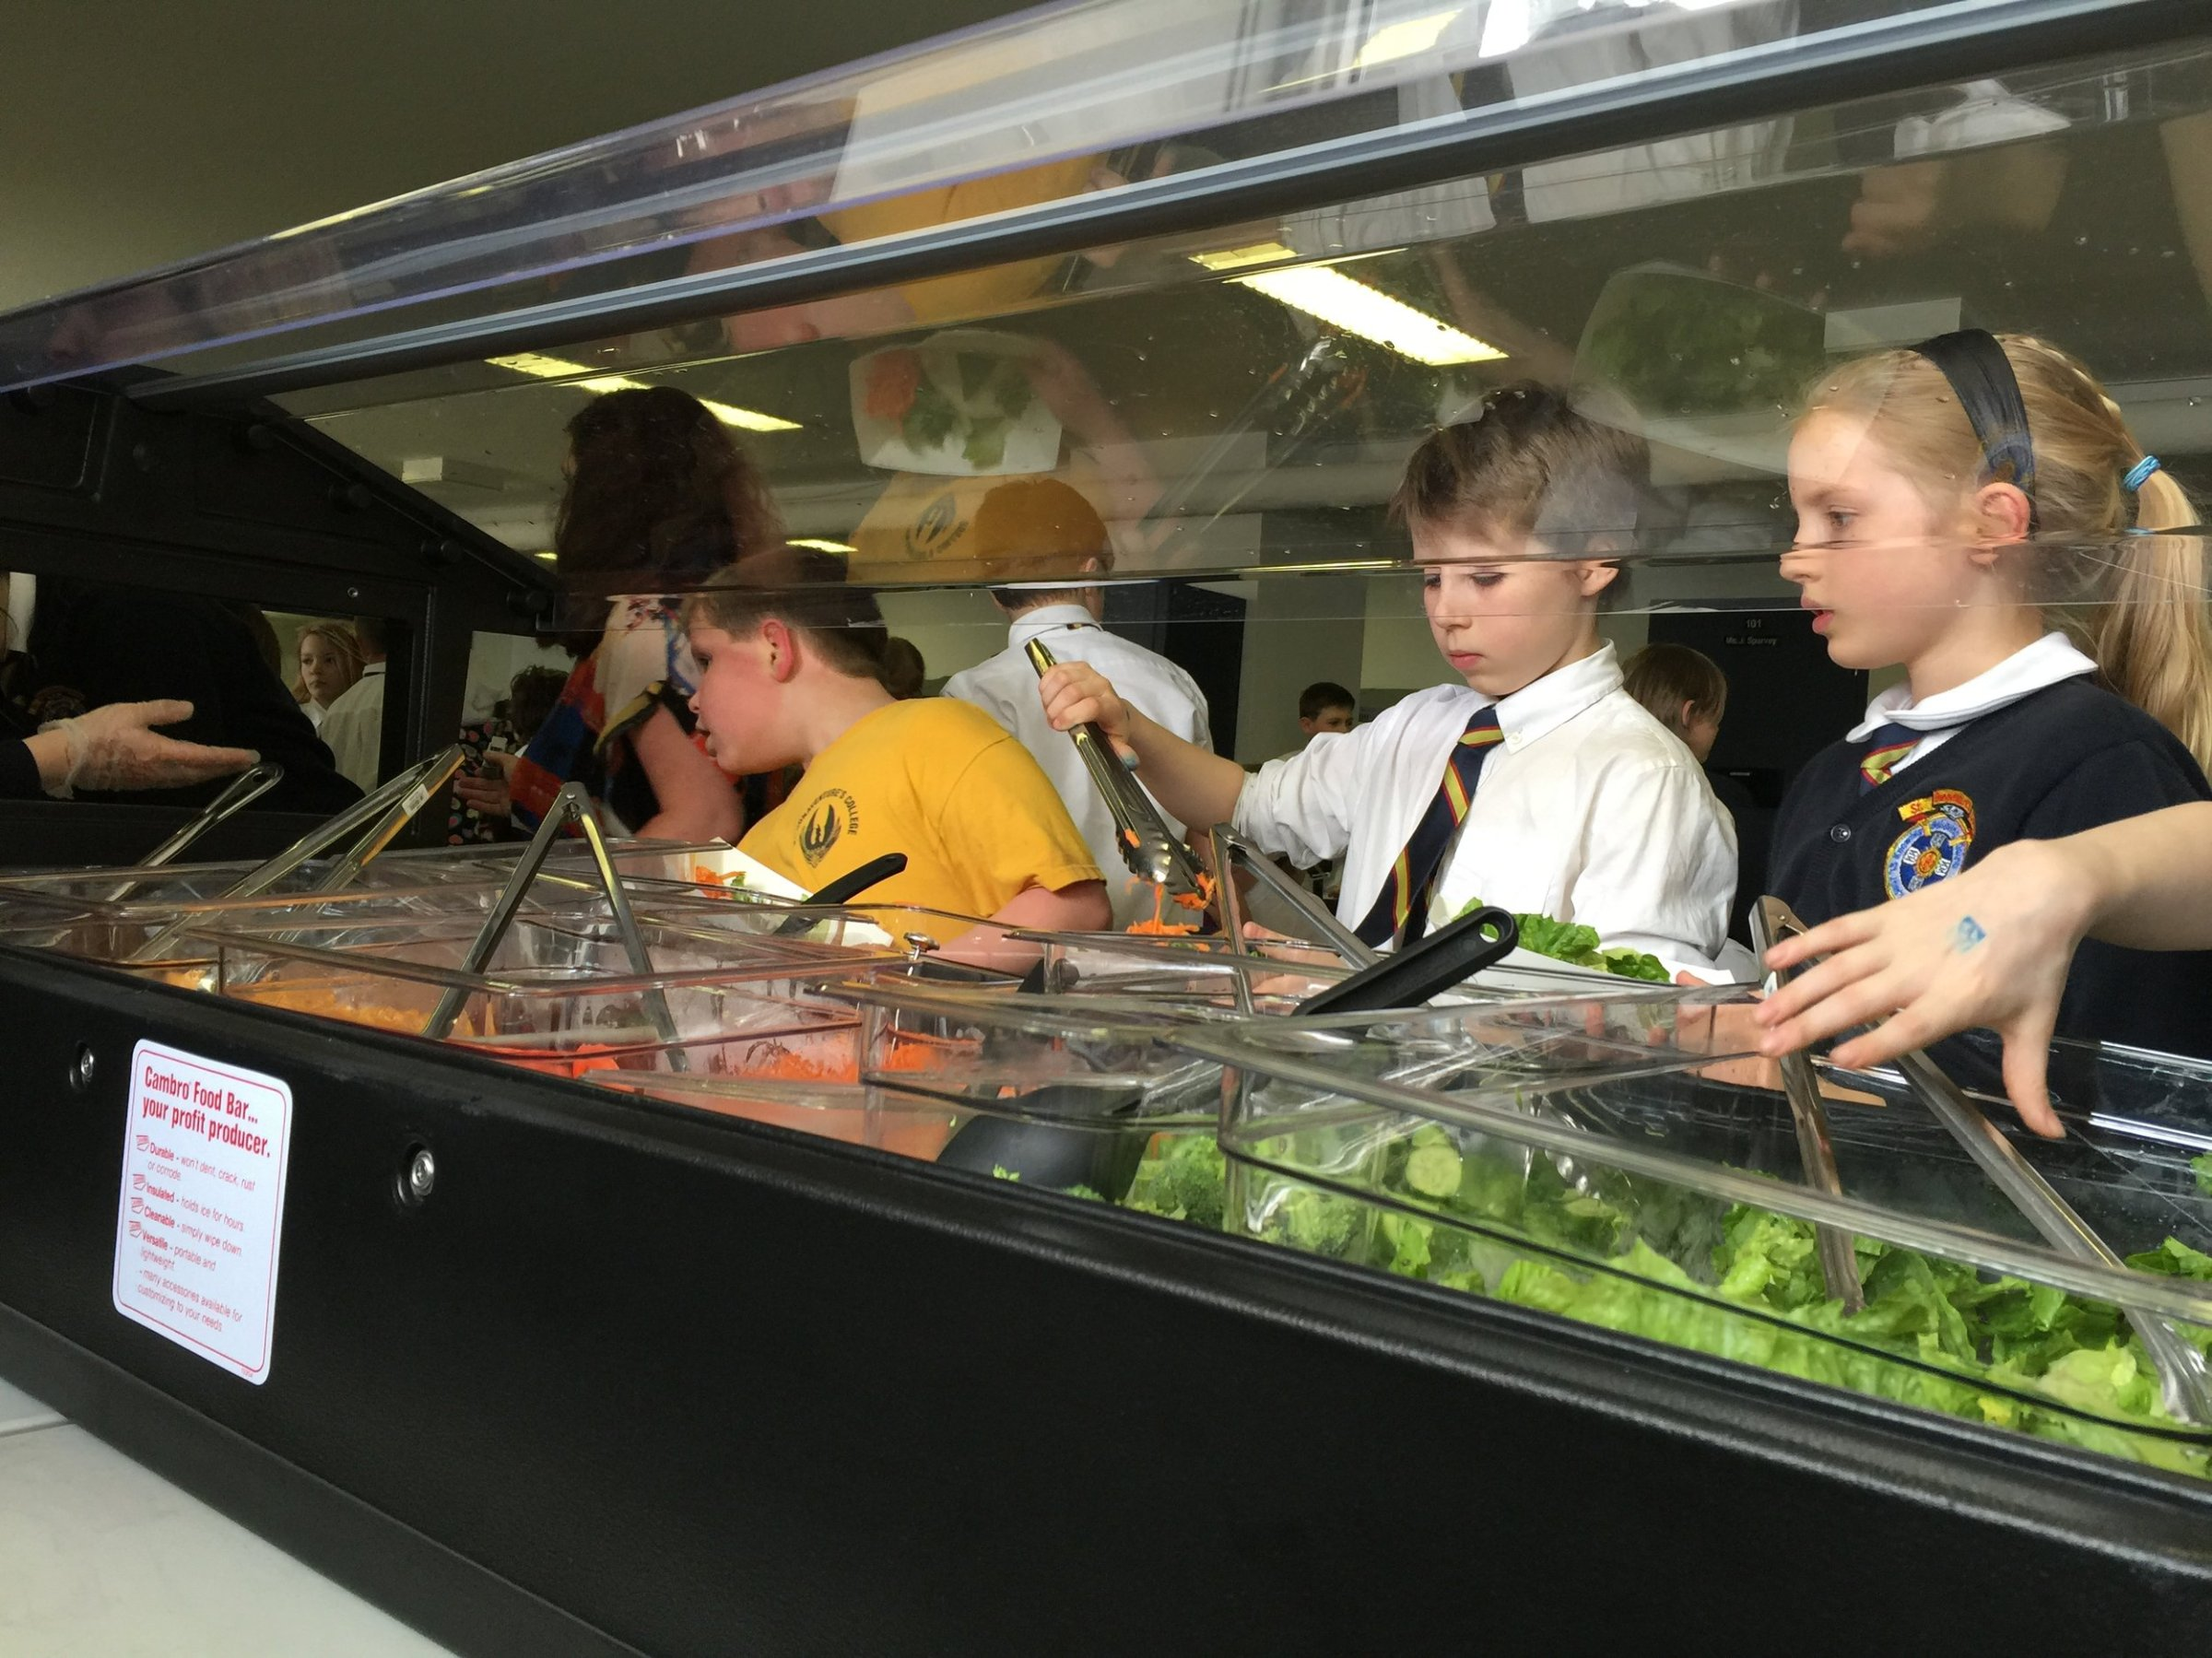 """3 SCHOOLS IN NL TO RECEIVE """"FARM TO SCHOOL"""" GRANTS FROM NATIONAL PROGRAM"""